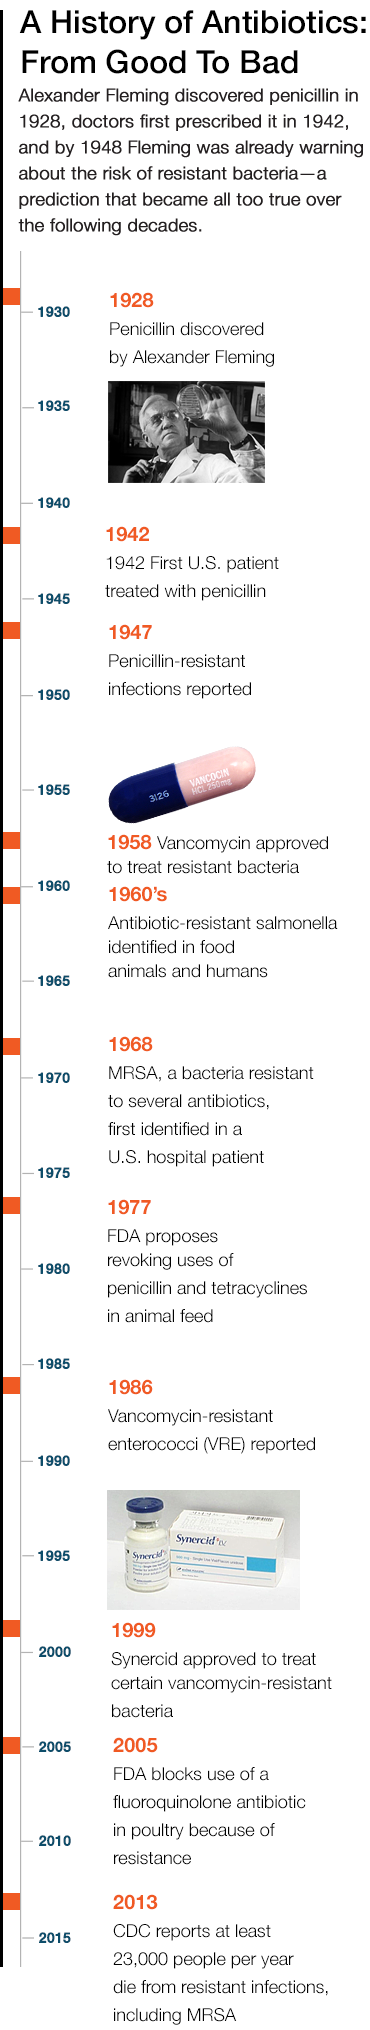 Timeline_antibiotics_